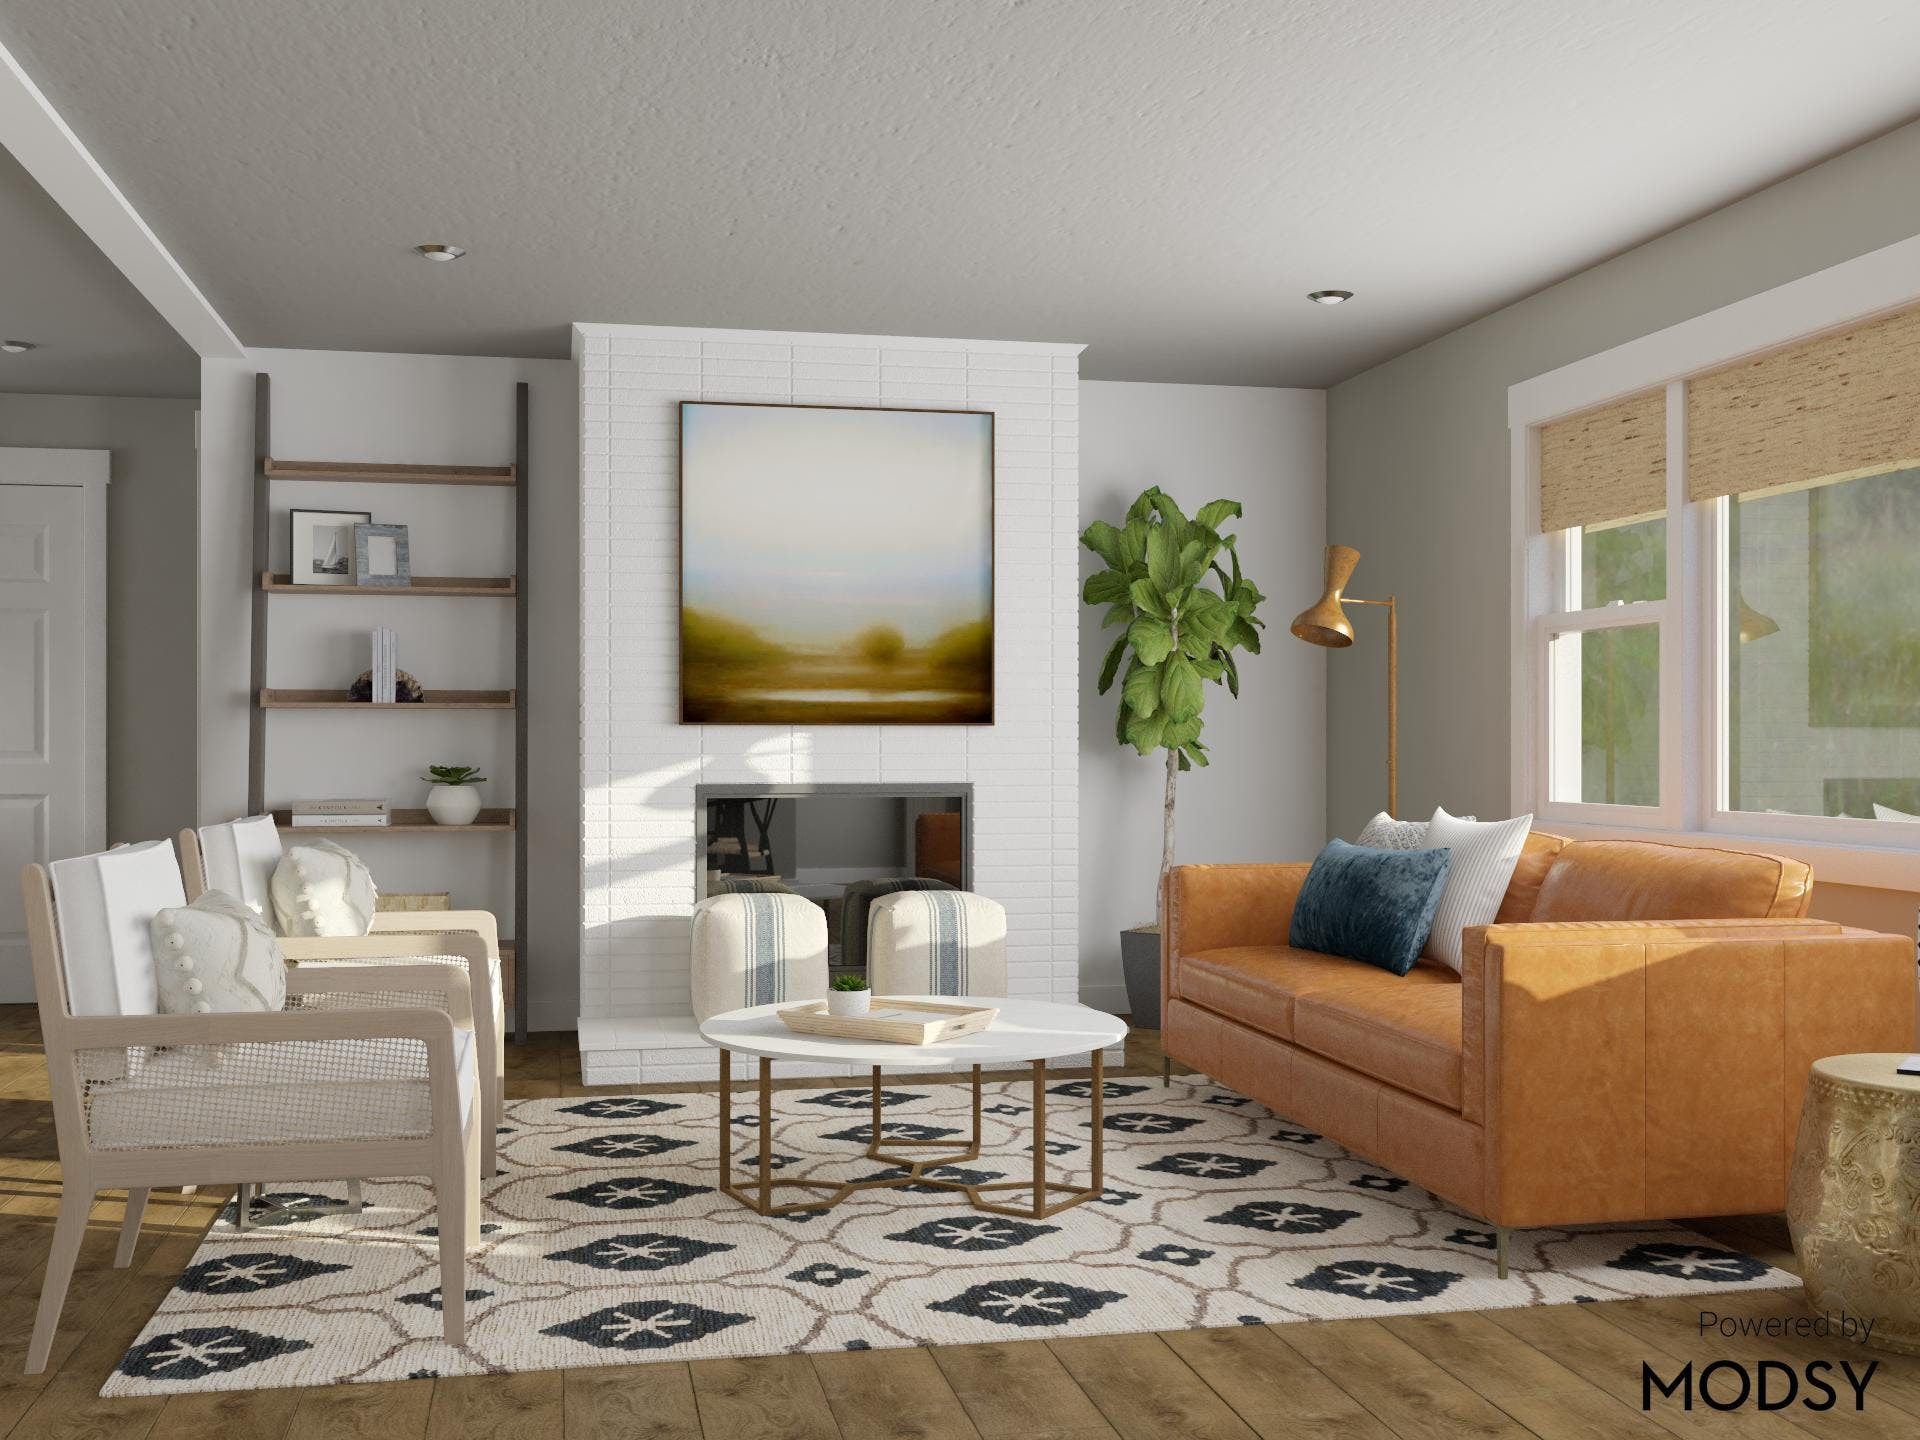 Modern Aesthetic Meets Rustic Warmth